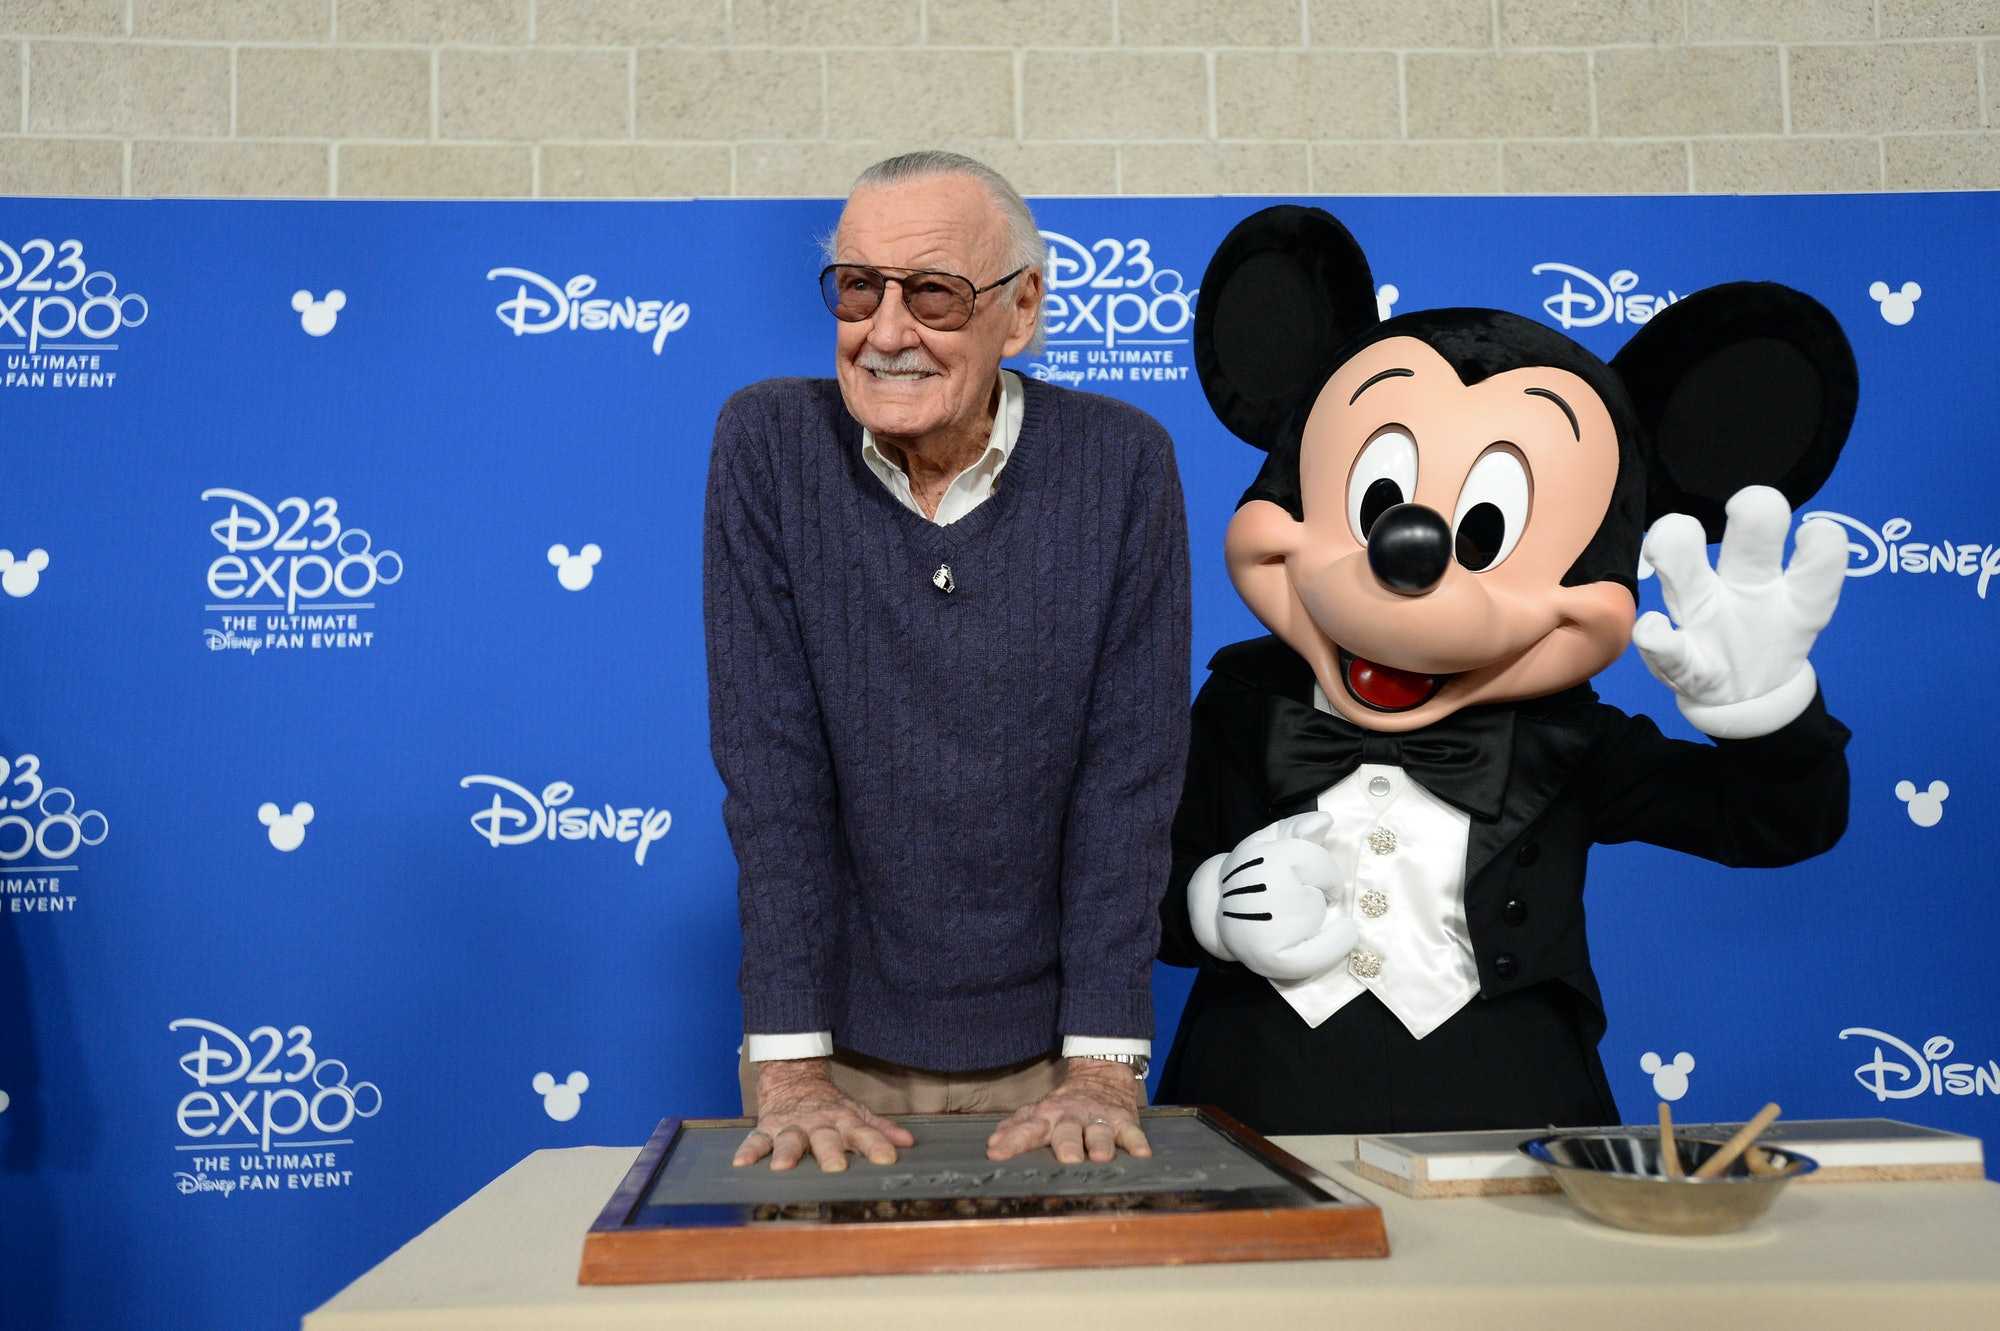 147118_AP2_5133 Stan Lee Disney Marvel